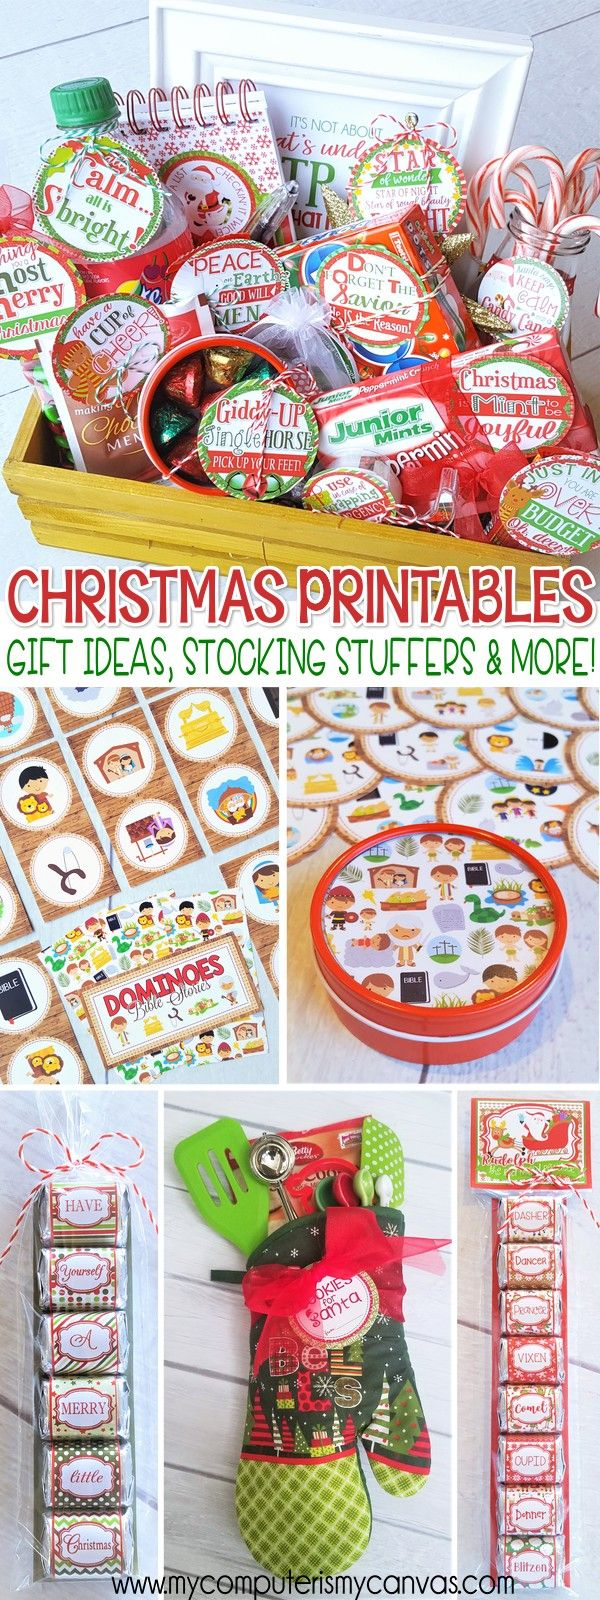 Christmas printables, stocking stuffer ideas, neighbor gifts, care package gift tags, teacher gift ideas and more! #mycomputerismycanvas